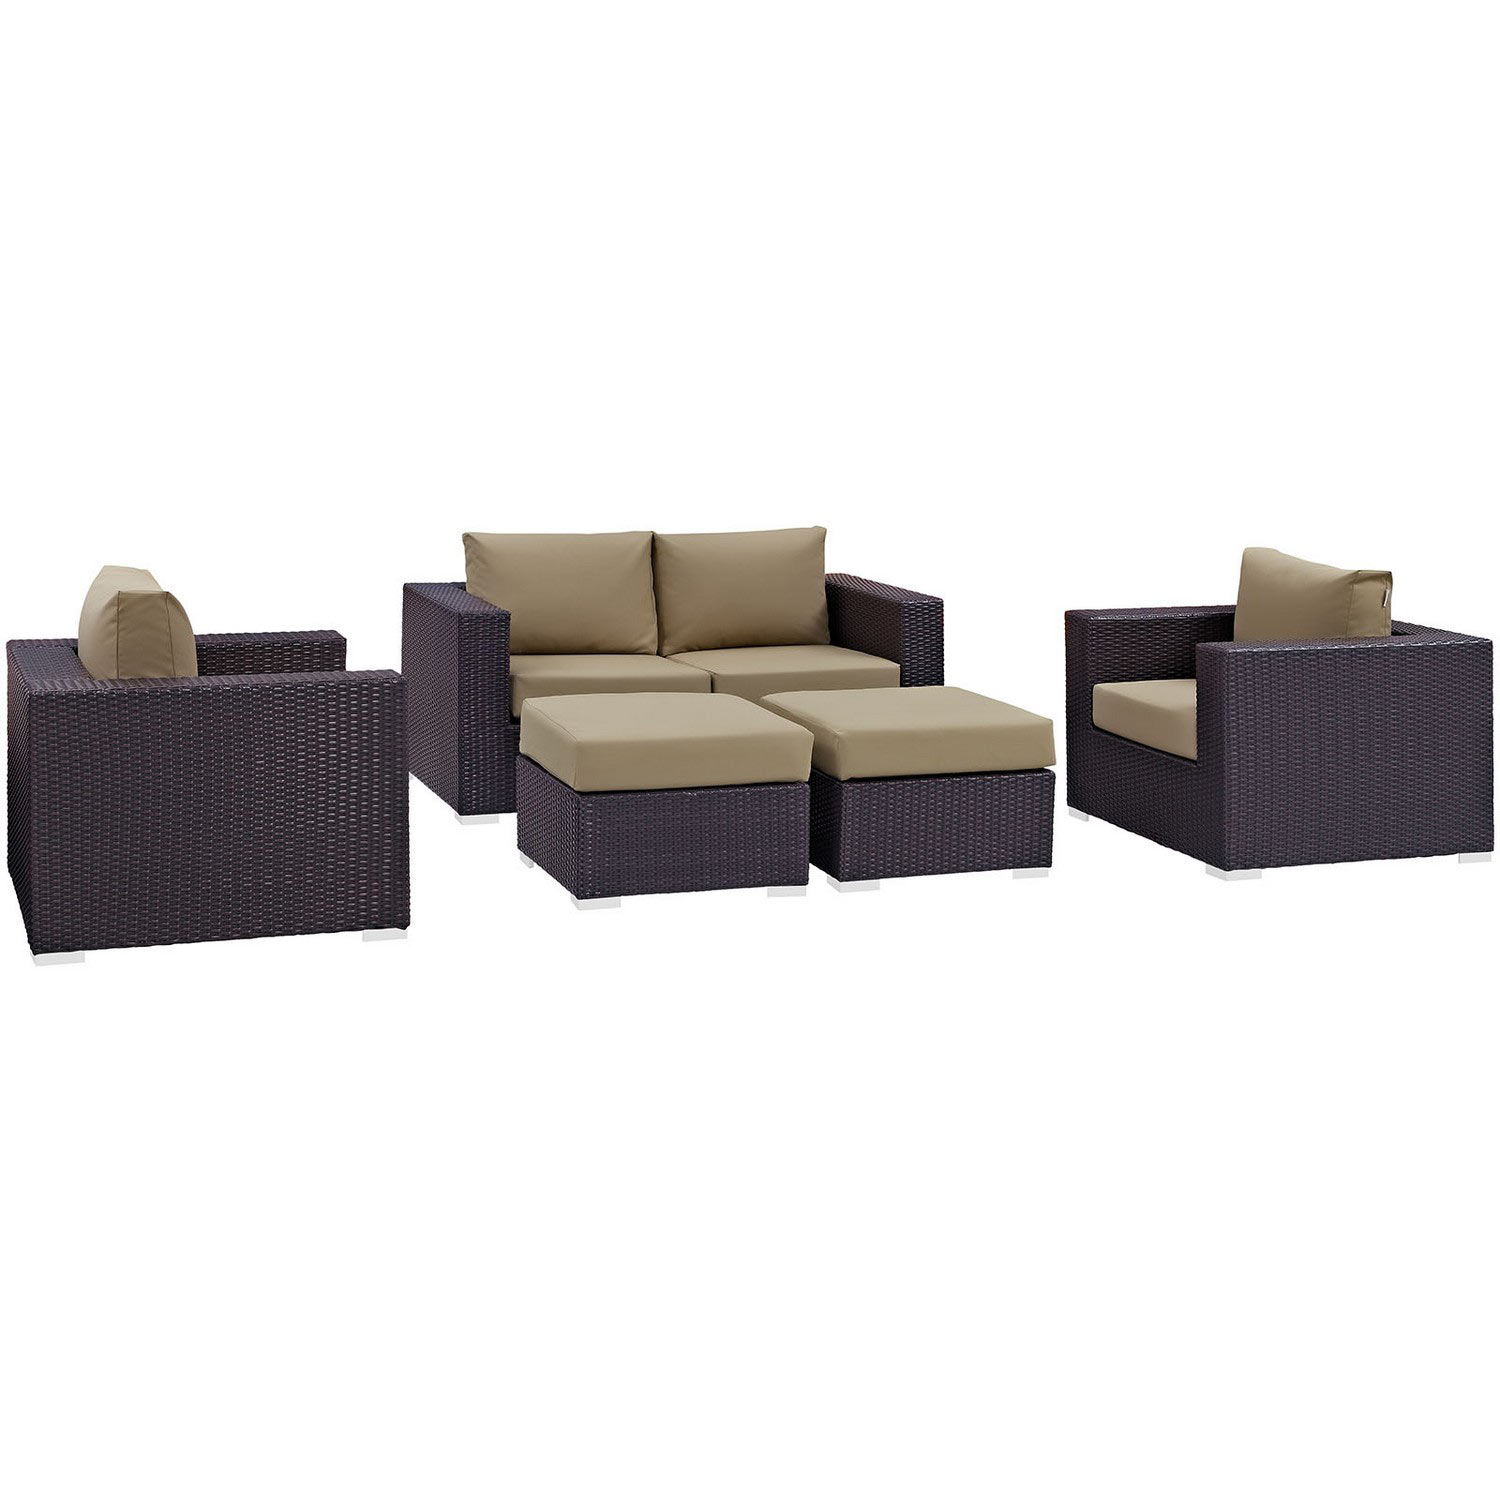 Modway Convene 5 Piece Outdoor Patio Sofa Set - Espresso Mocha